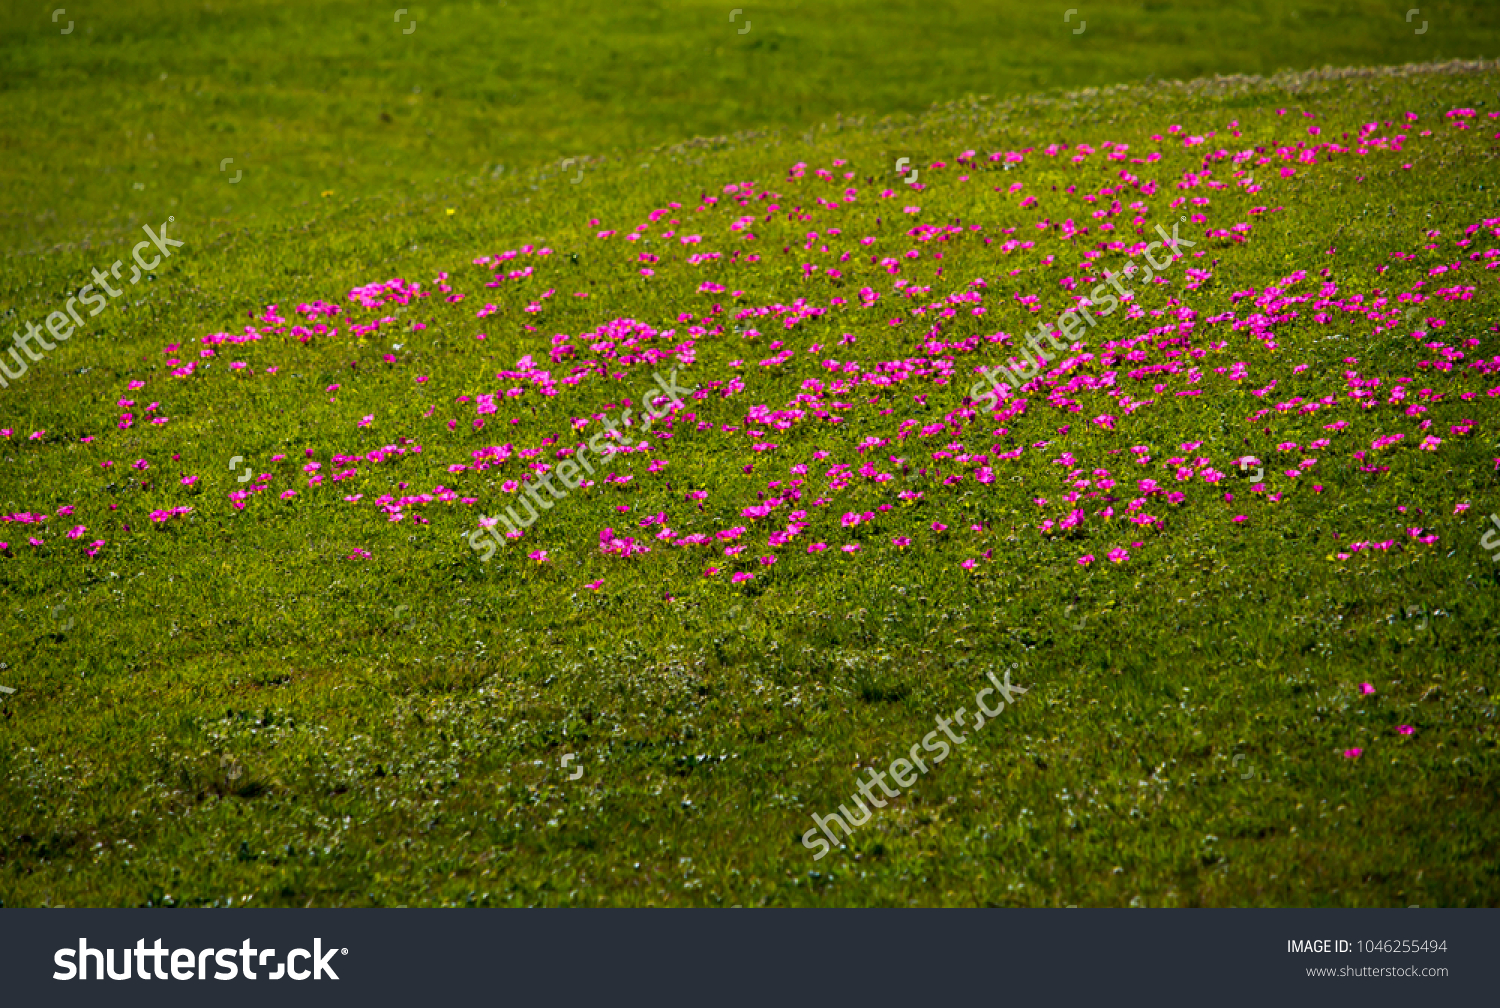 Bright tiny pink flowers guildford grass stock photo edit now bright tiny pink flowers of guildford grass or onion grass from south africa is a common mightylinksfo